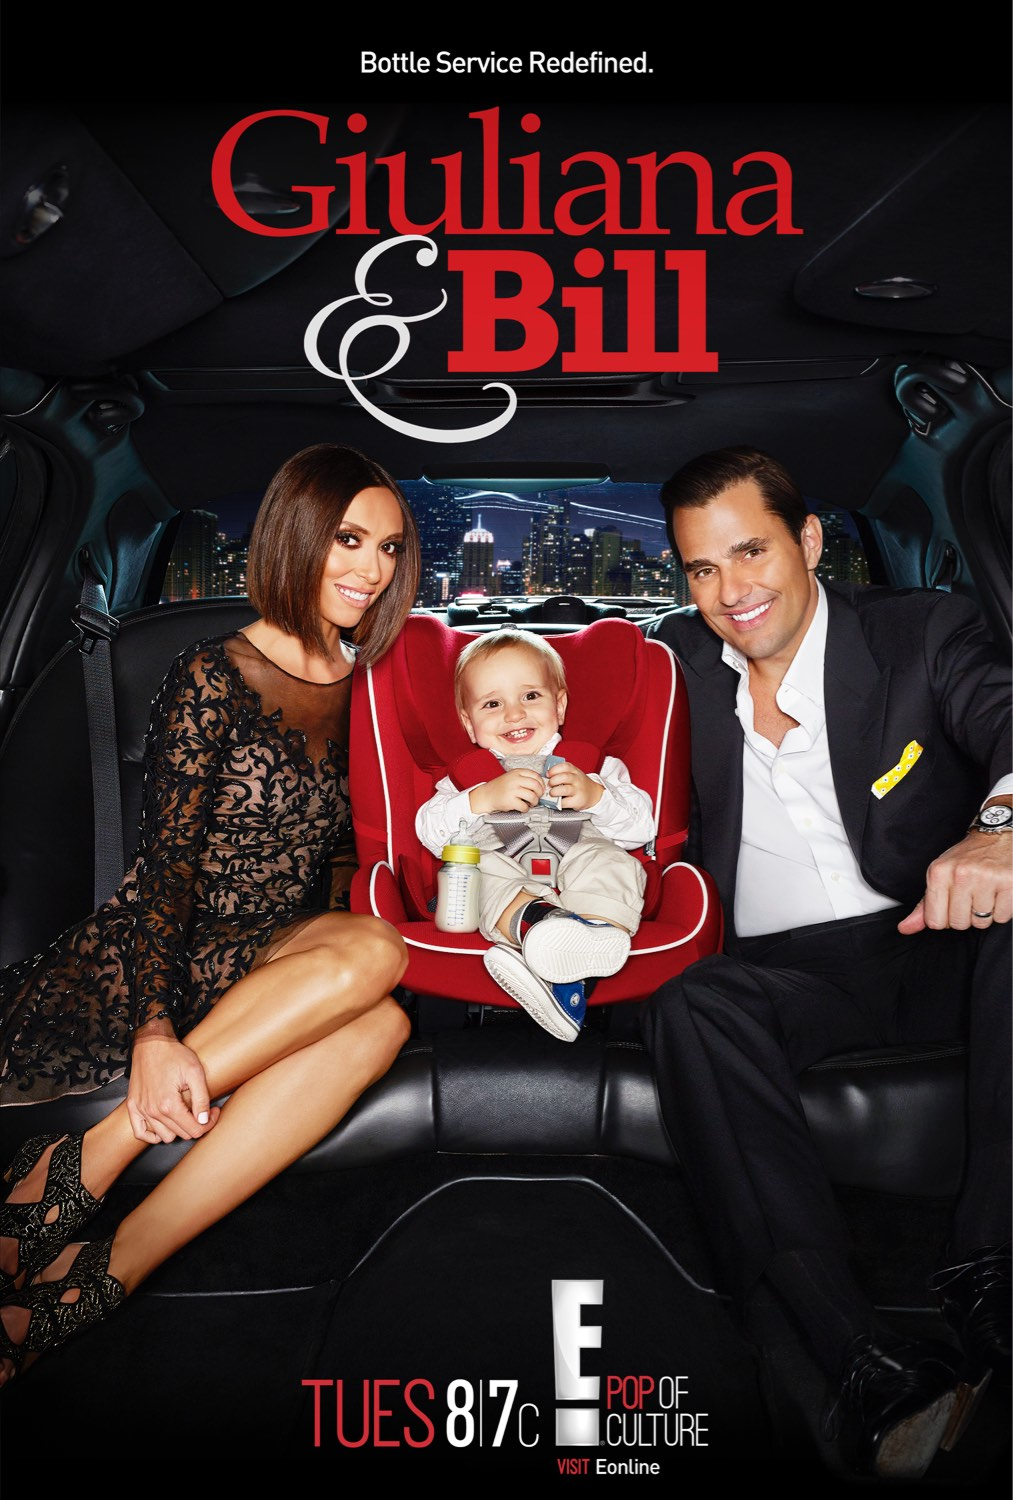 GIULIANA & BILL.jpg